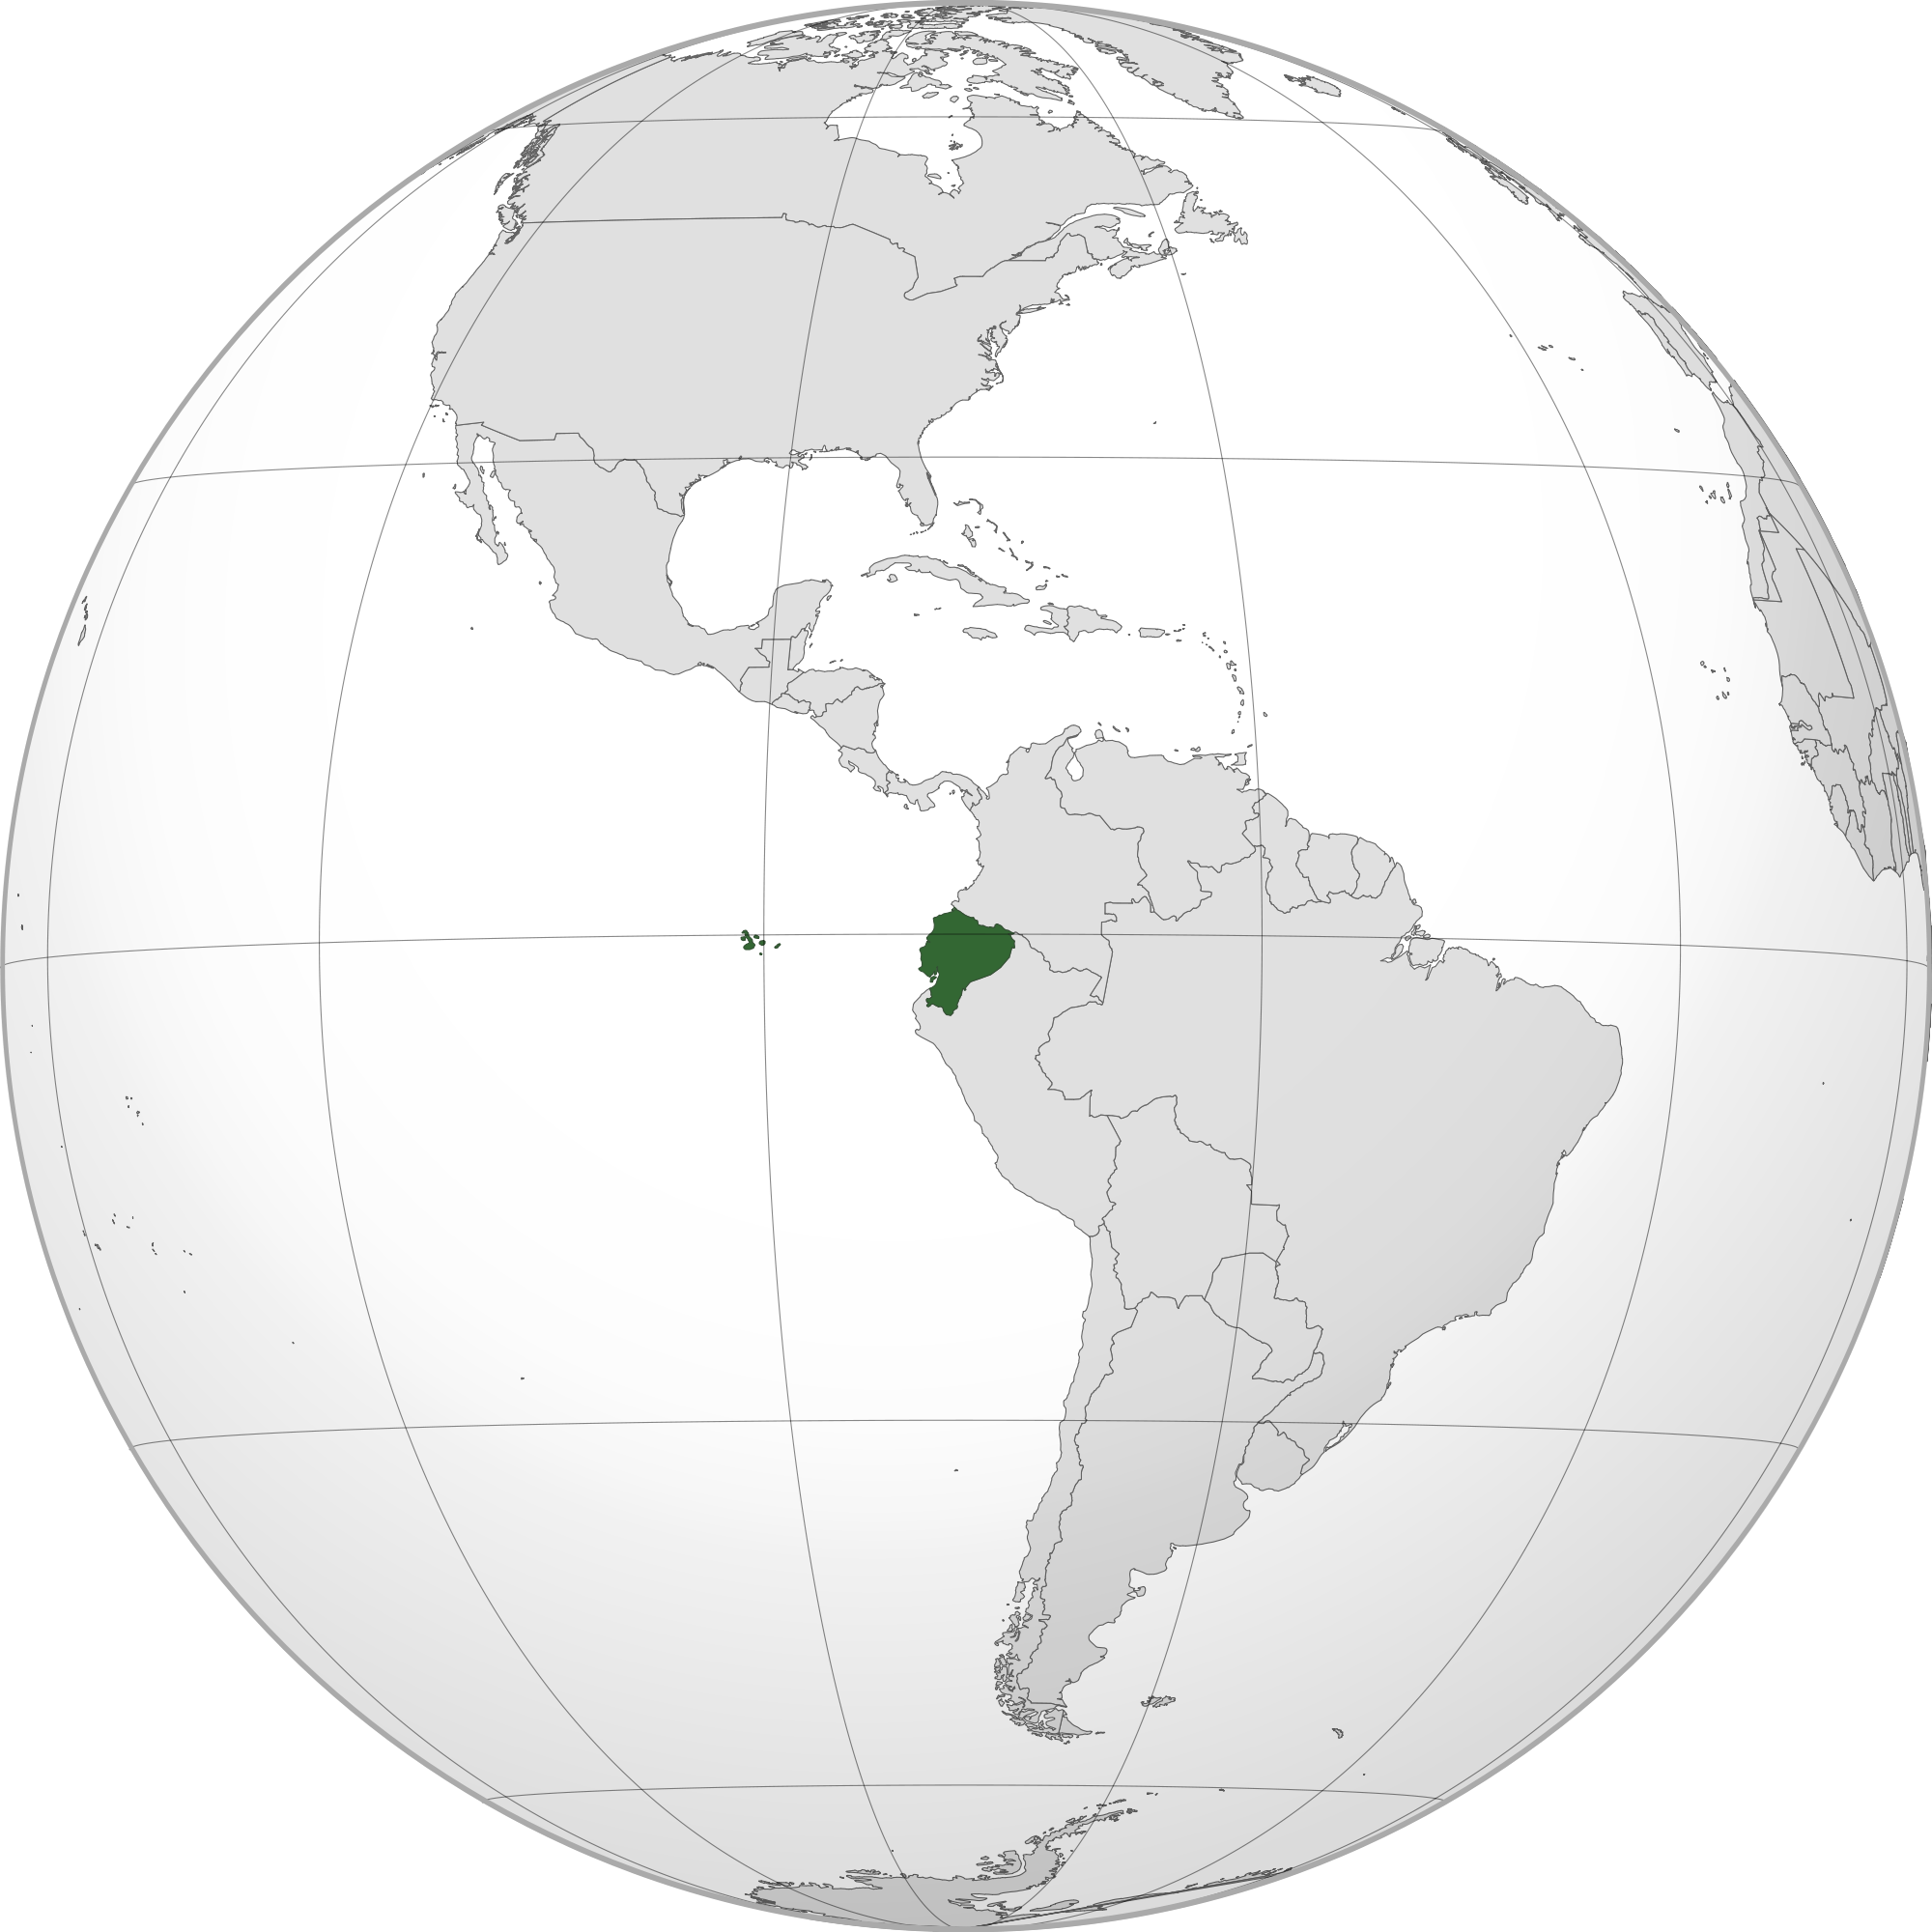 Location of the ecuador in the World Map